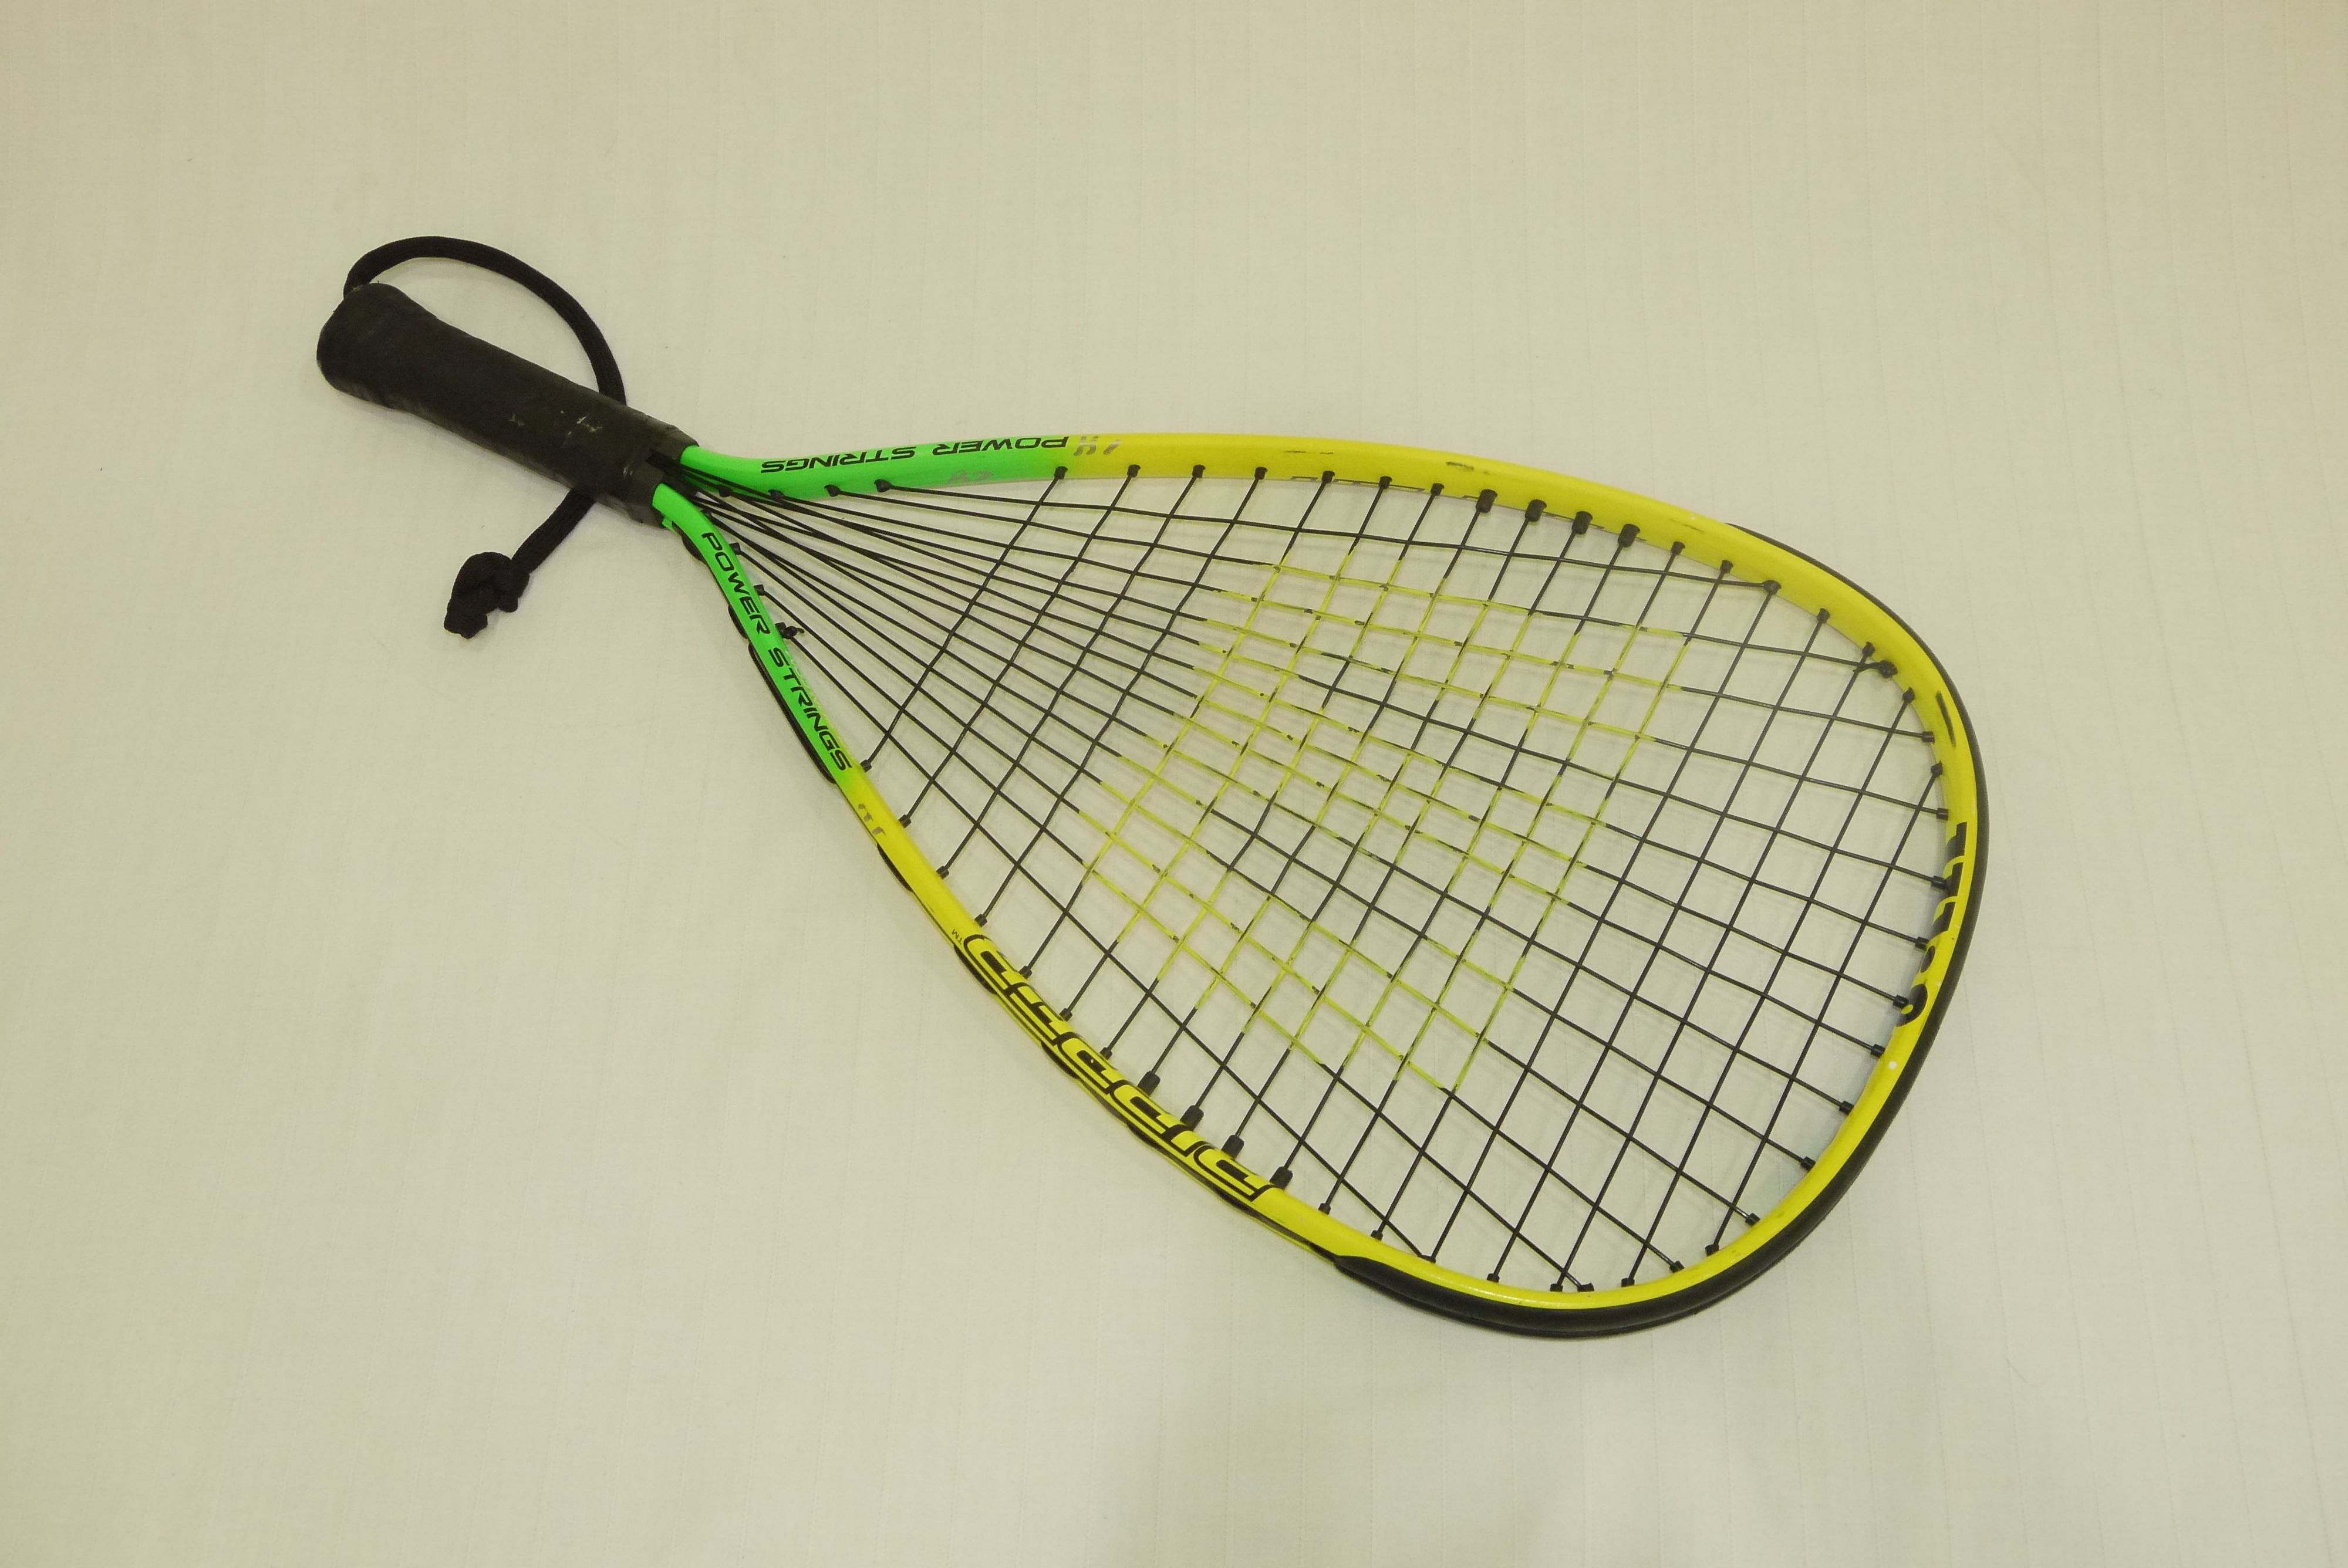 Racquetball racket. Racquetball, Rackets, Sports equipment